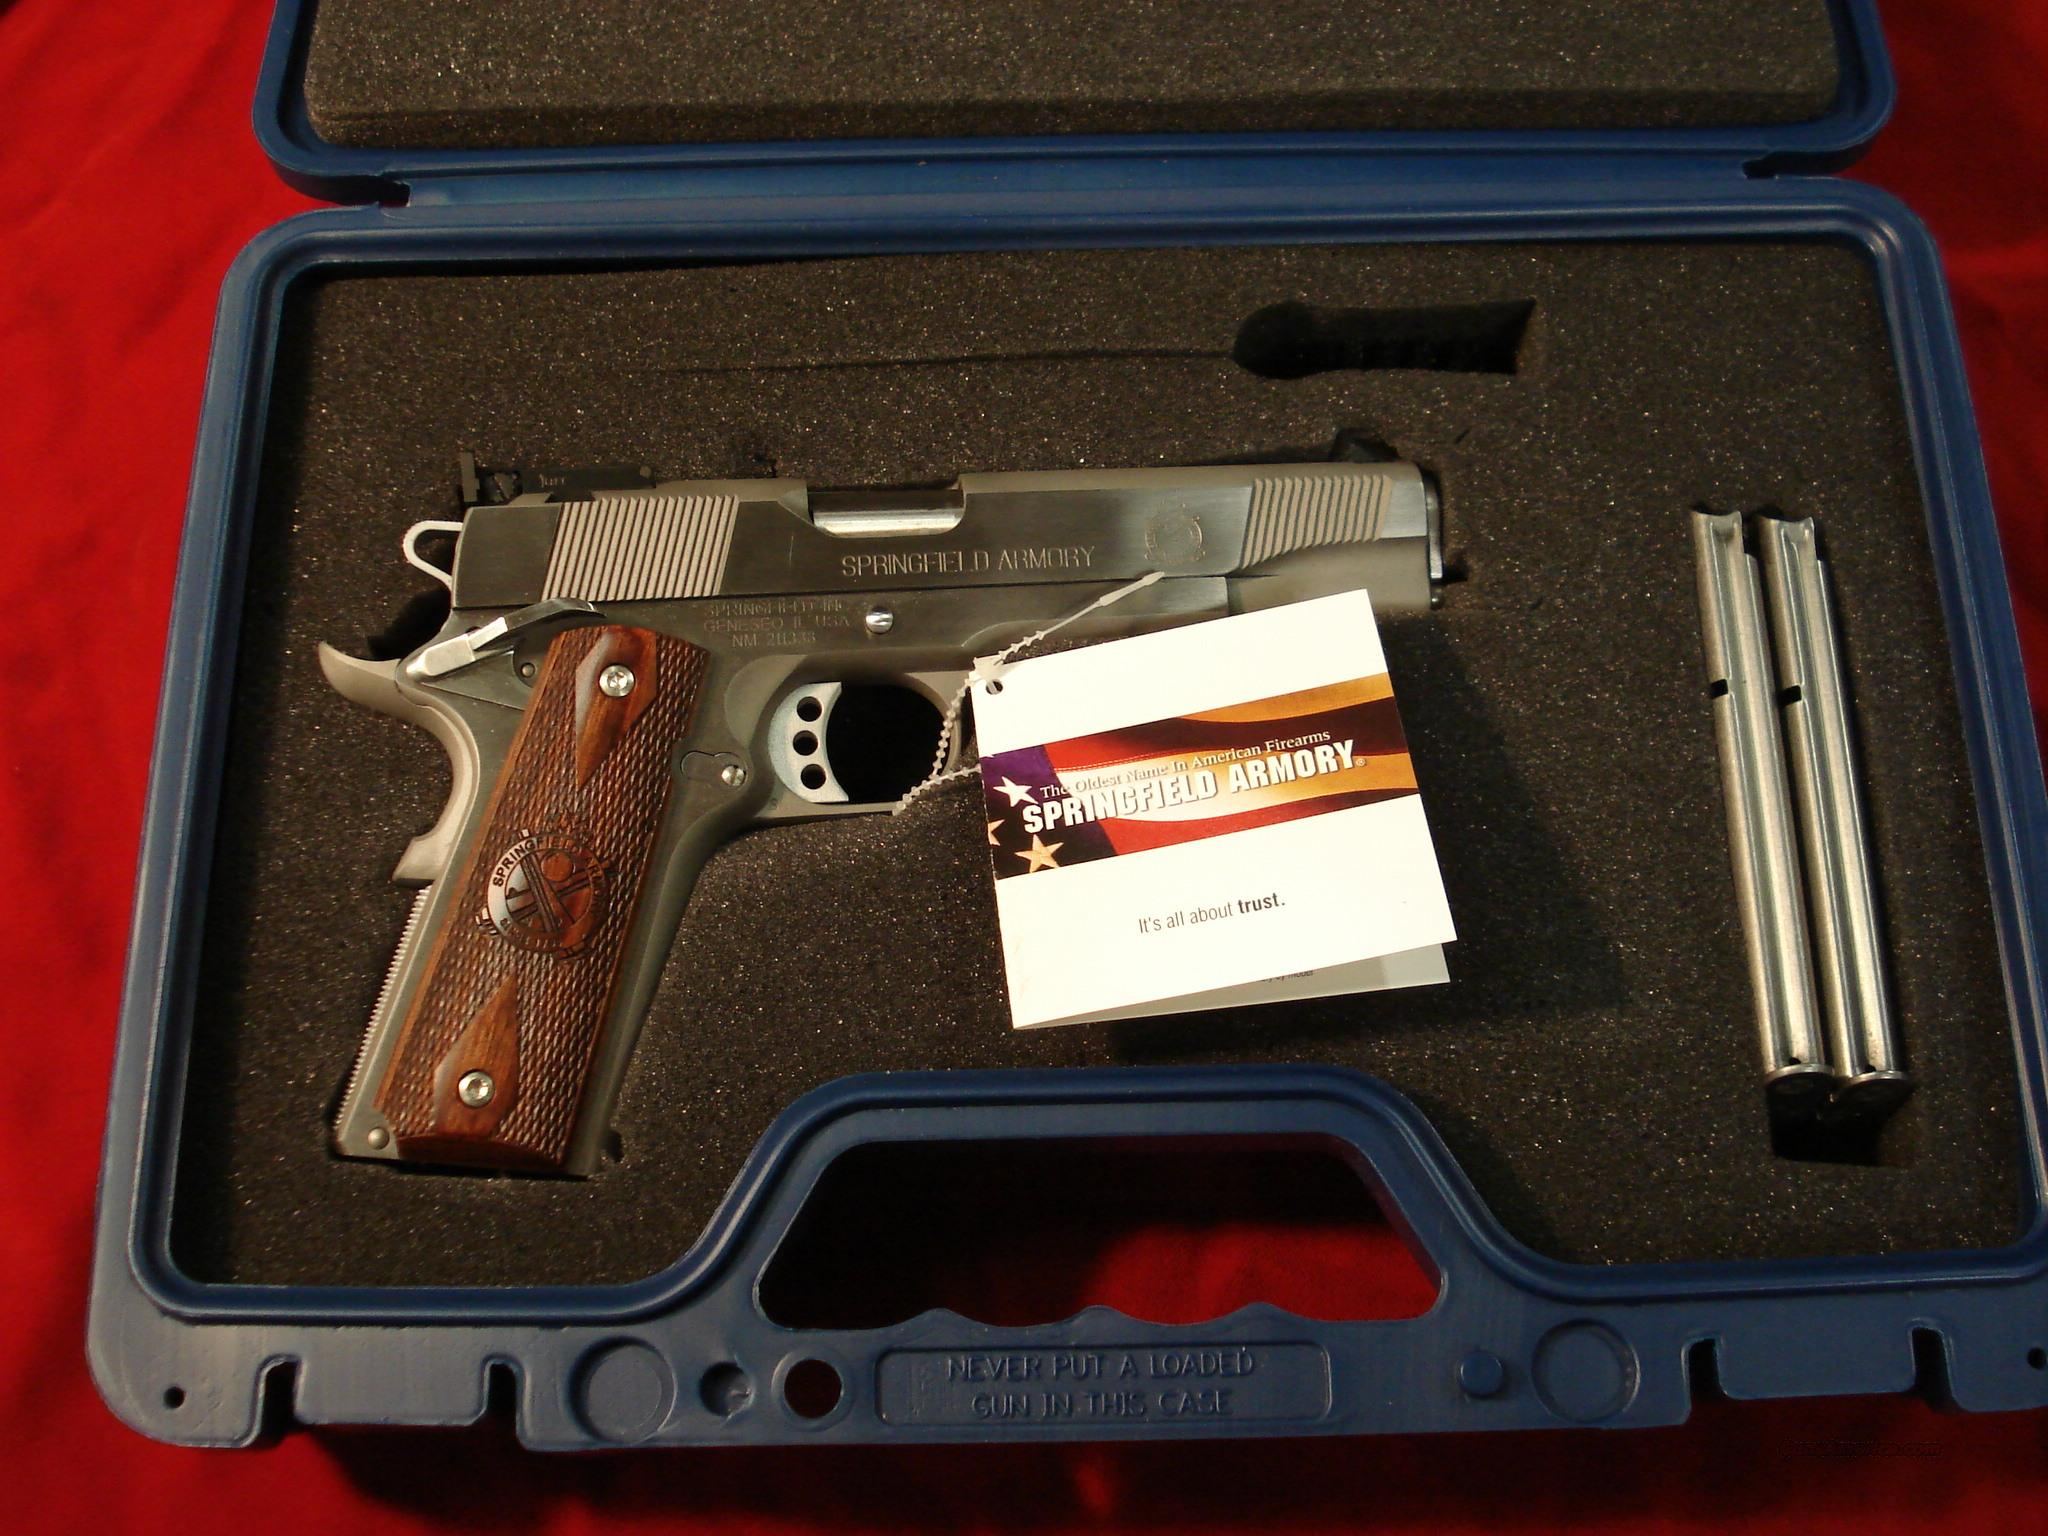 SPRINGFIELD ARMORY STAINLESS 9MM LOADED ADJ. SIGHTS (PI9134LP) NEW IN THE BOX  Guns > Pistols > Springfield Armory Pistols > 1911 Type